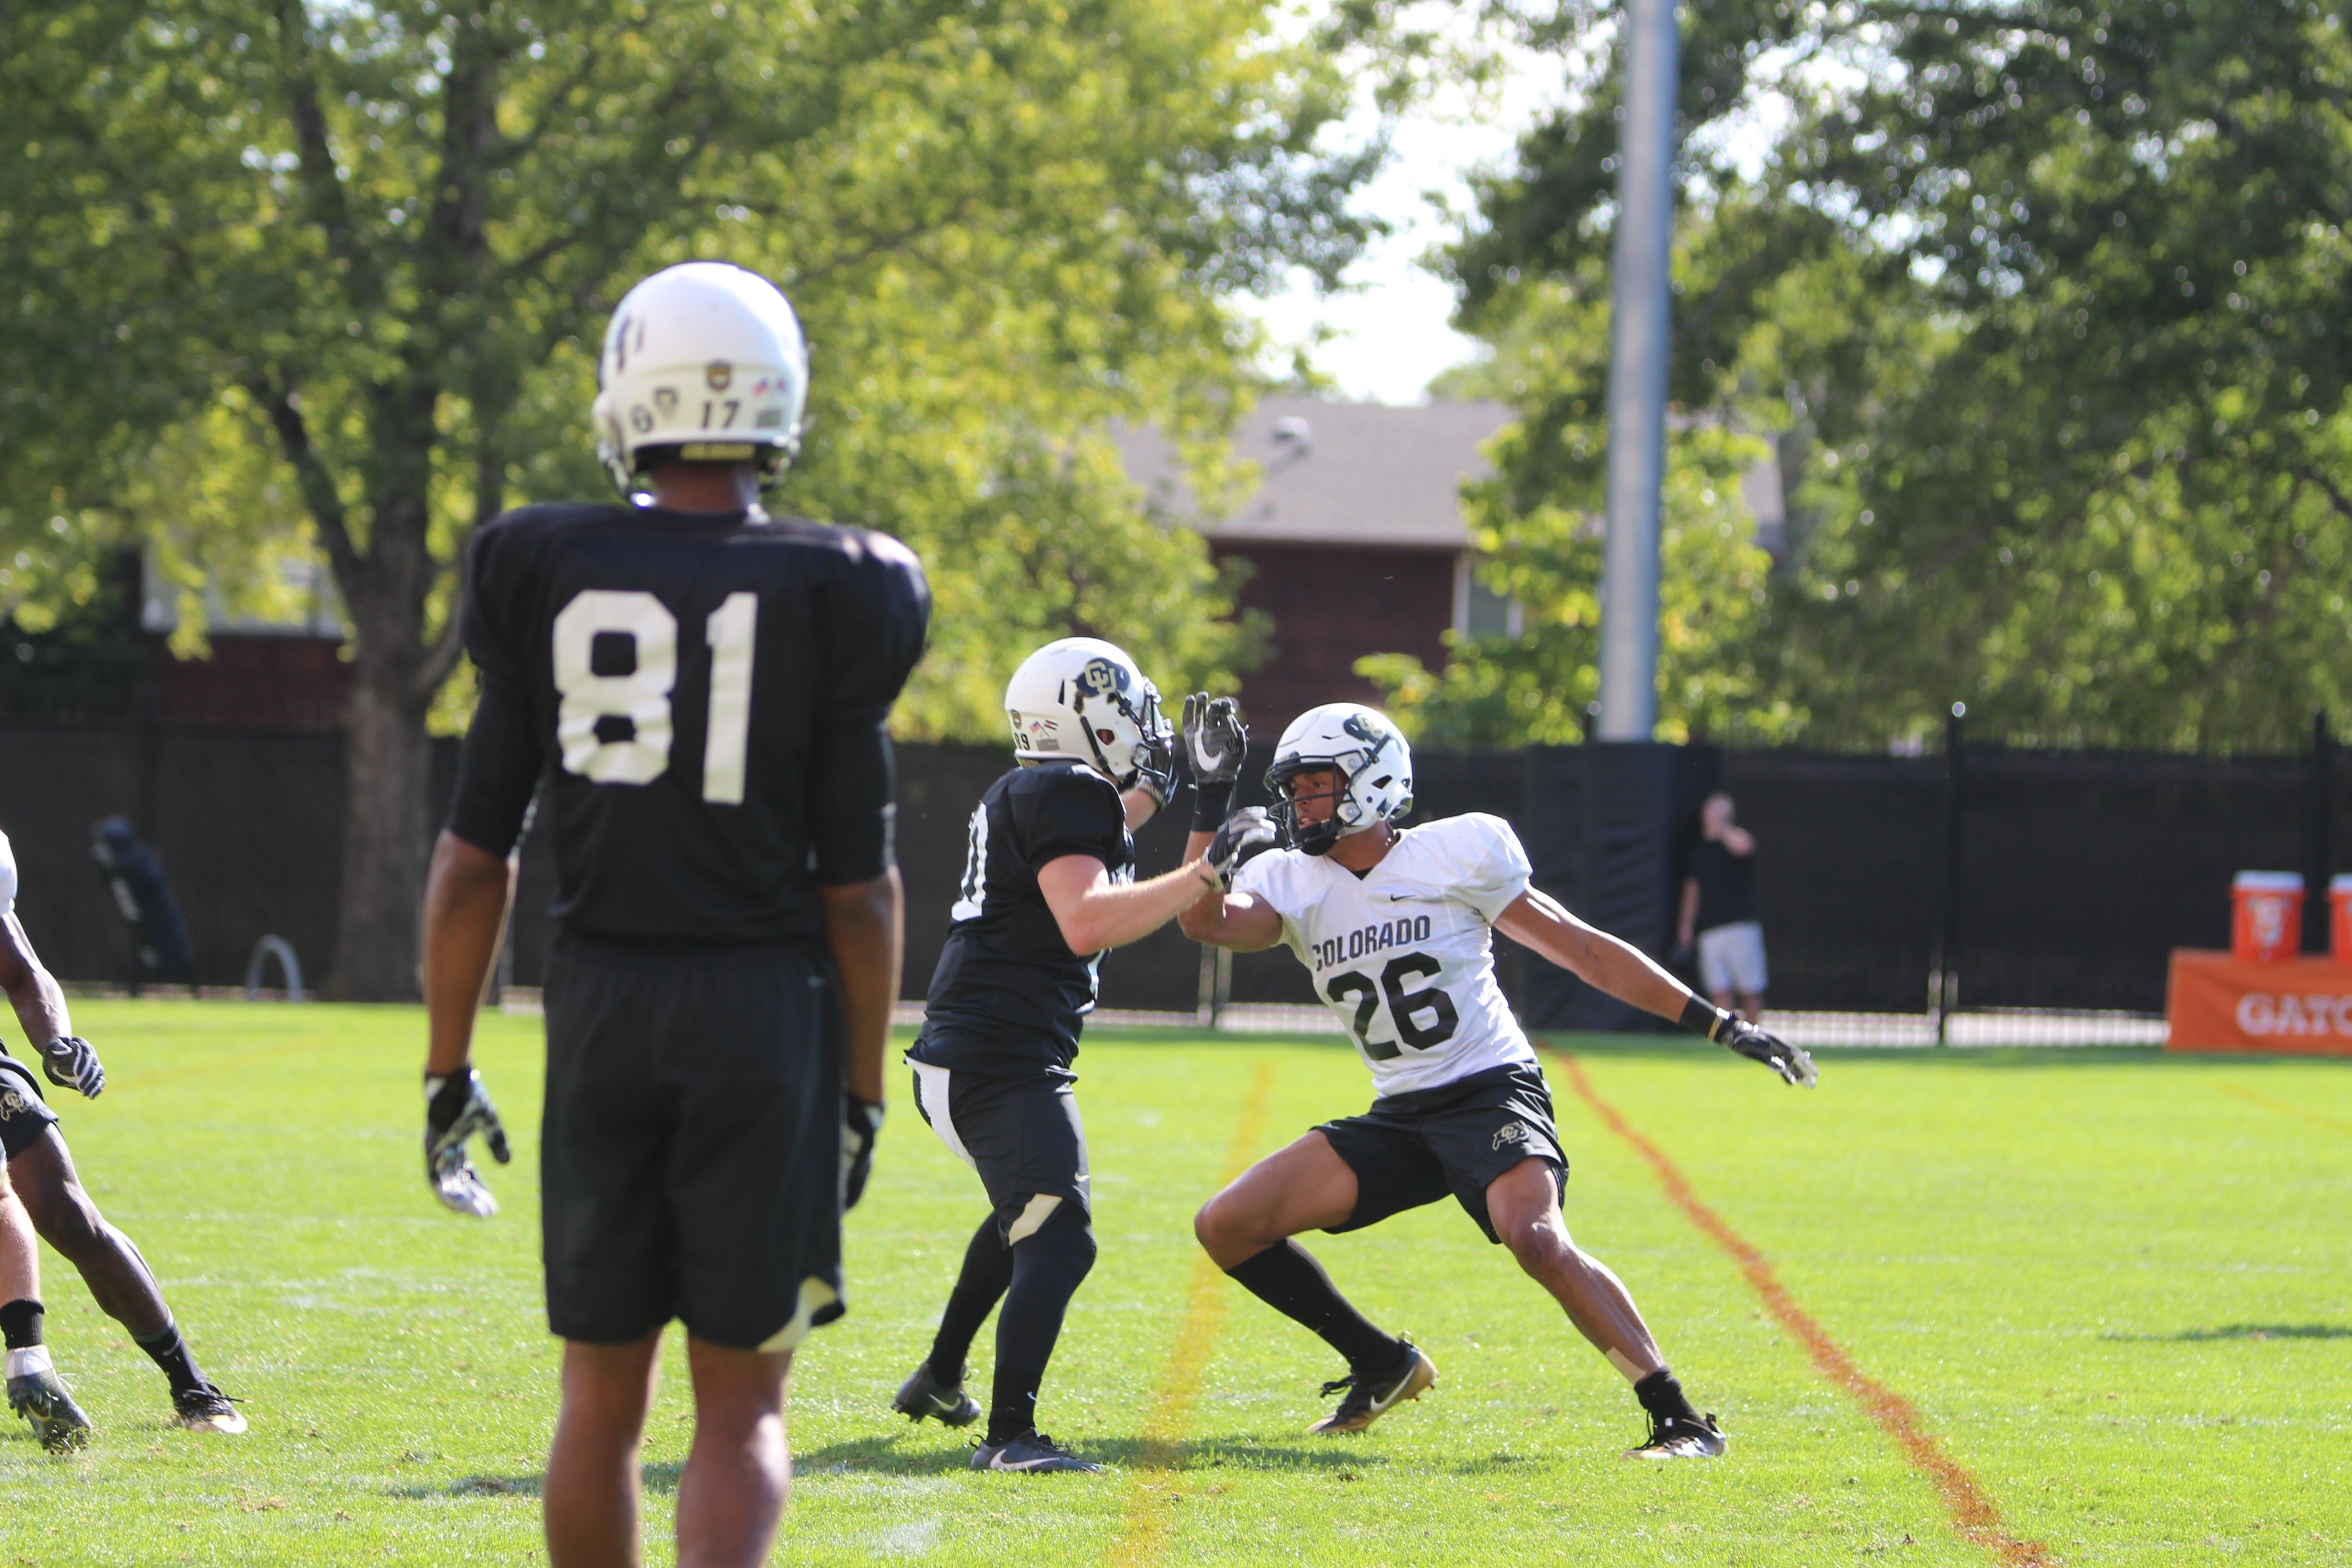 Despite great play, still room for improvement on defense for Buffs